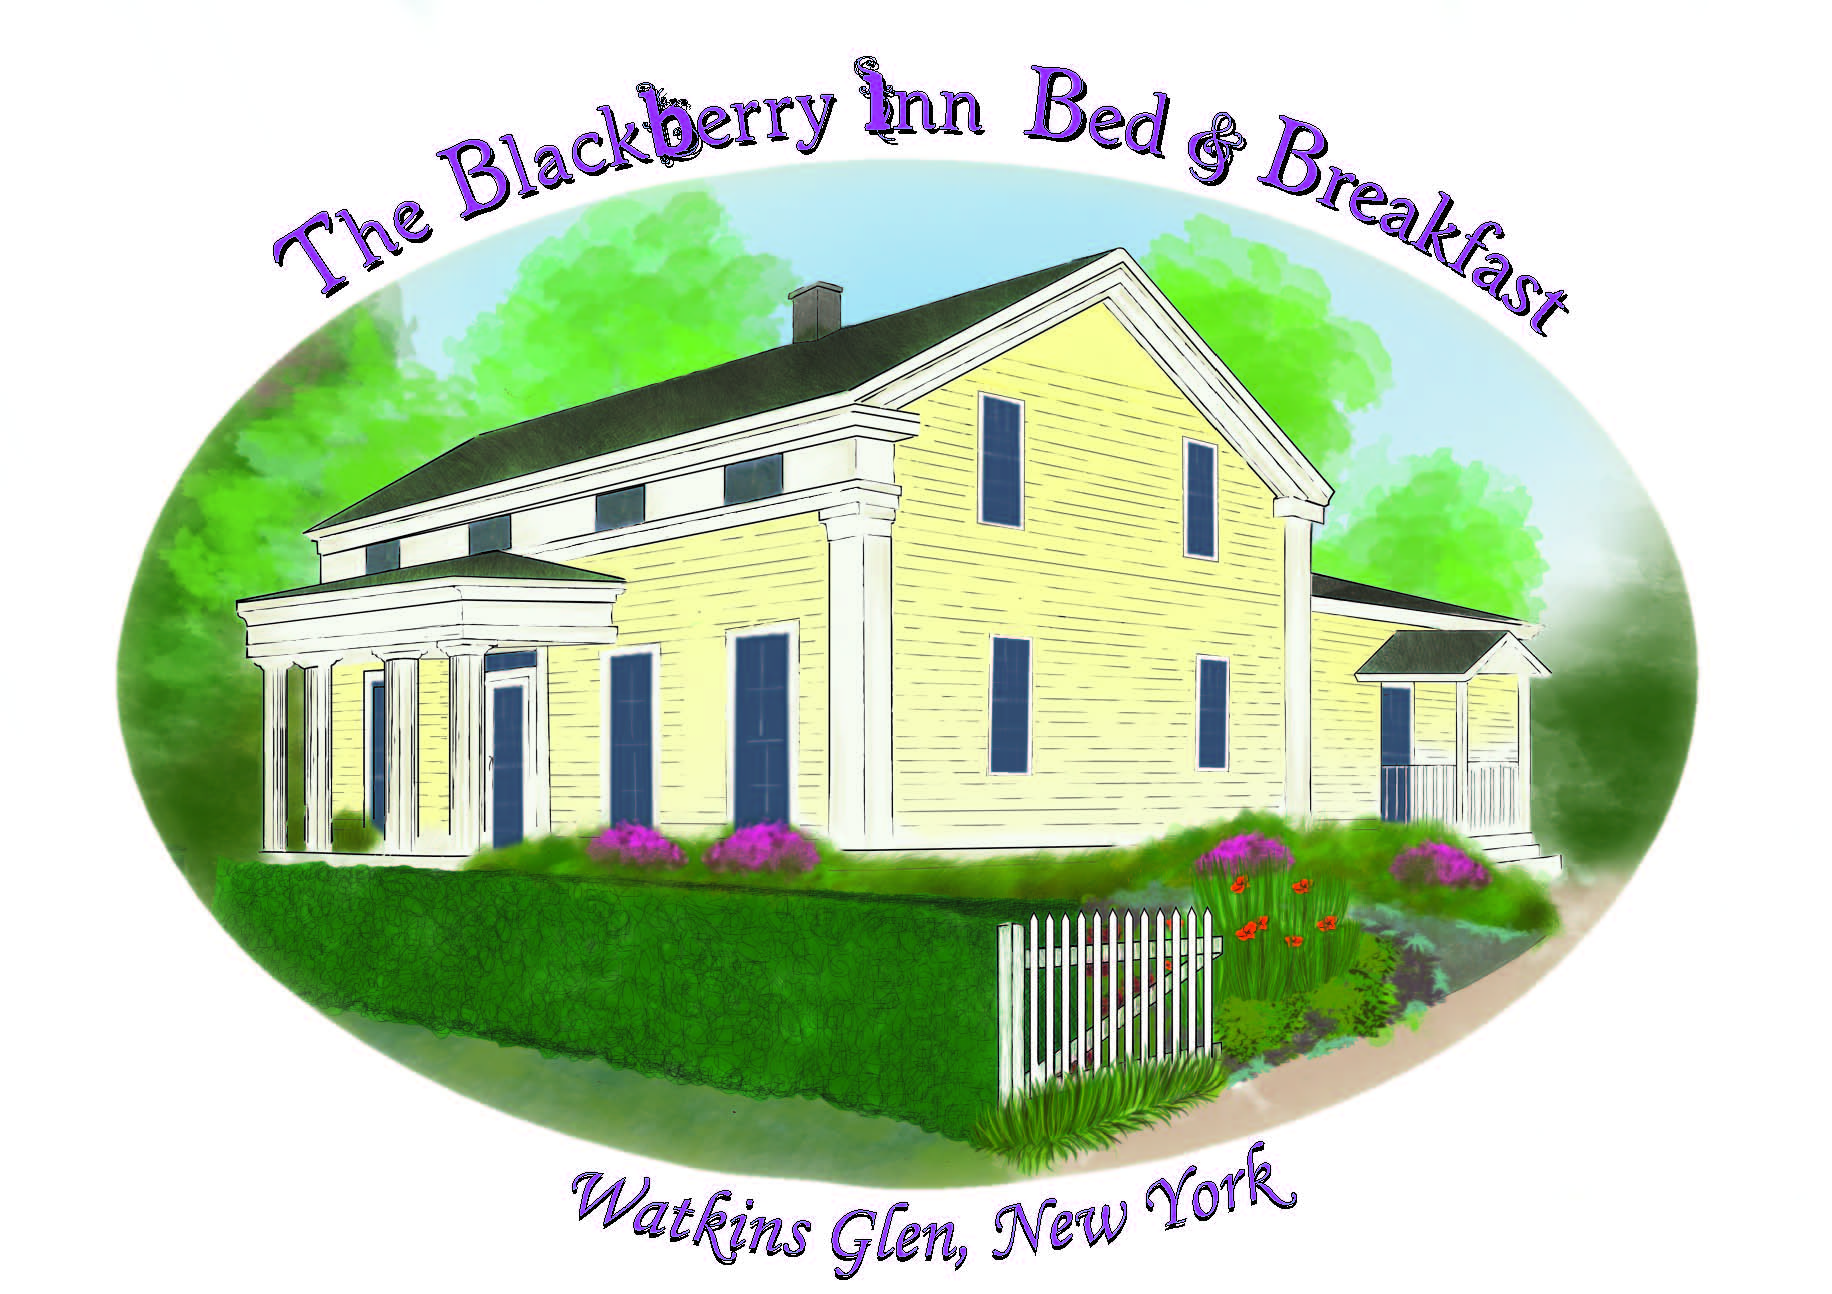 The Blackberry Inn Bed & Breakfast